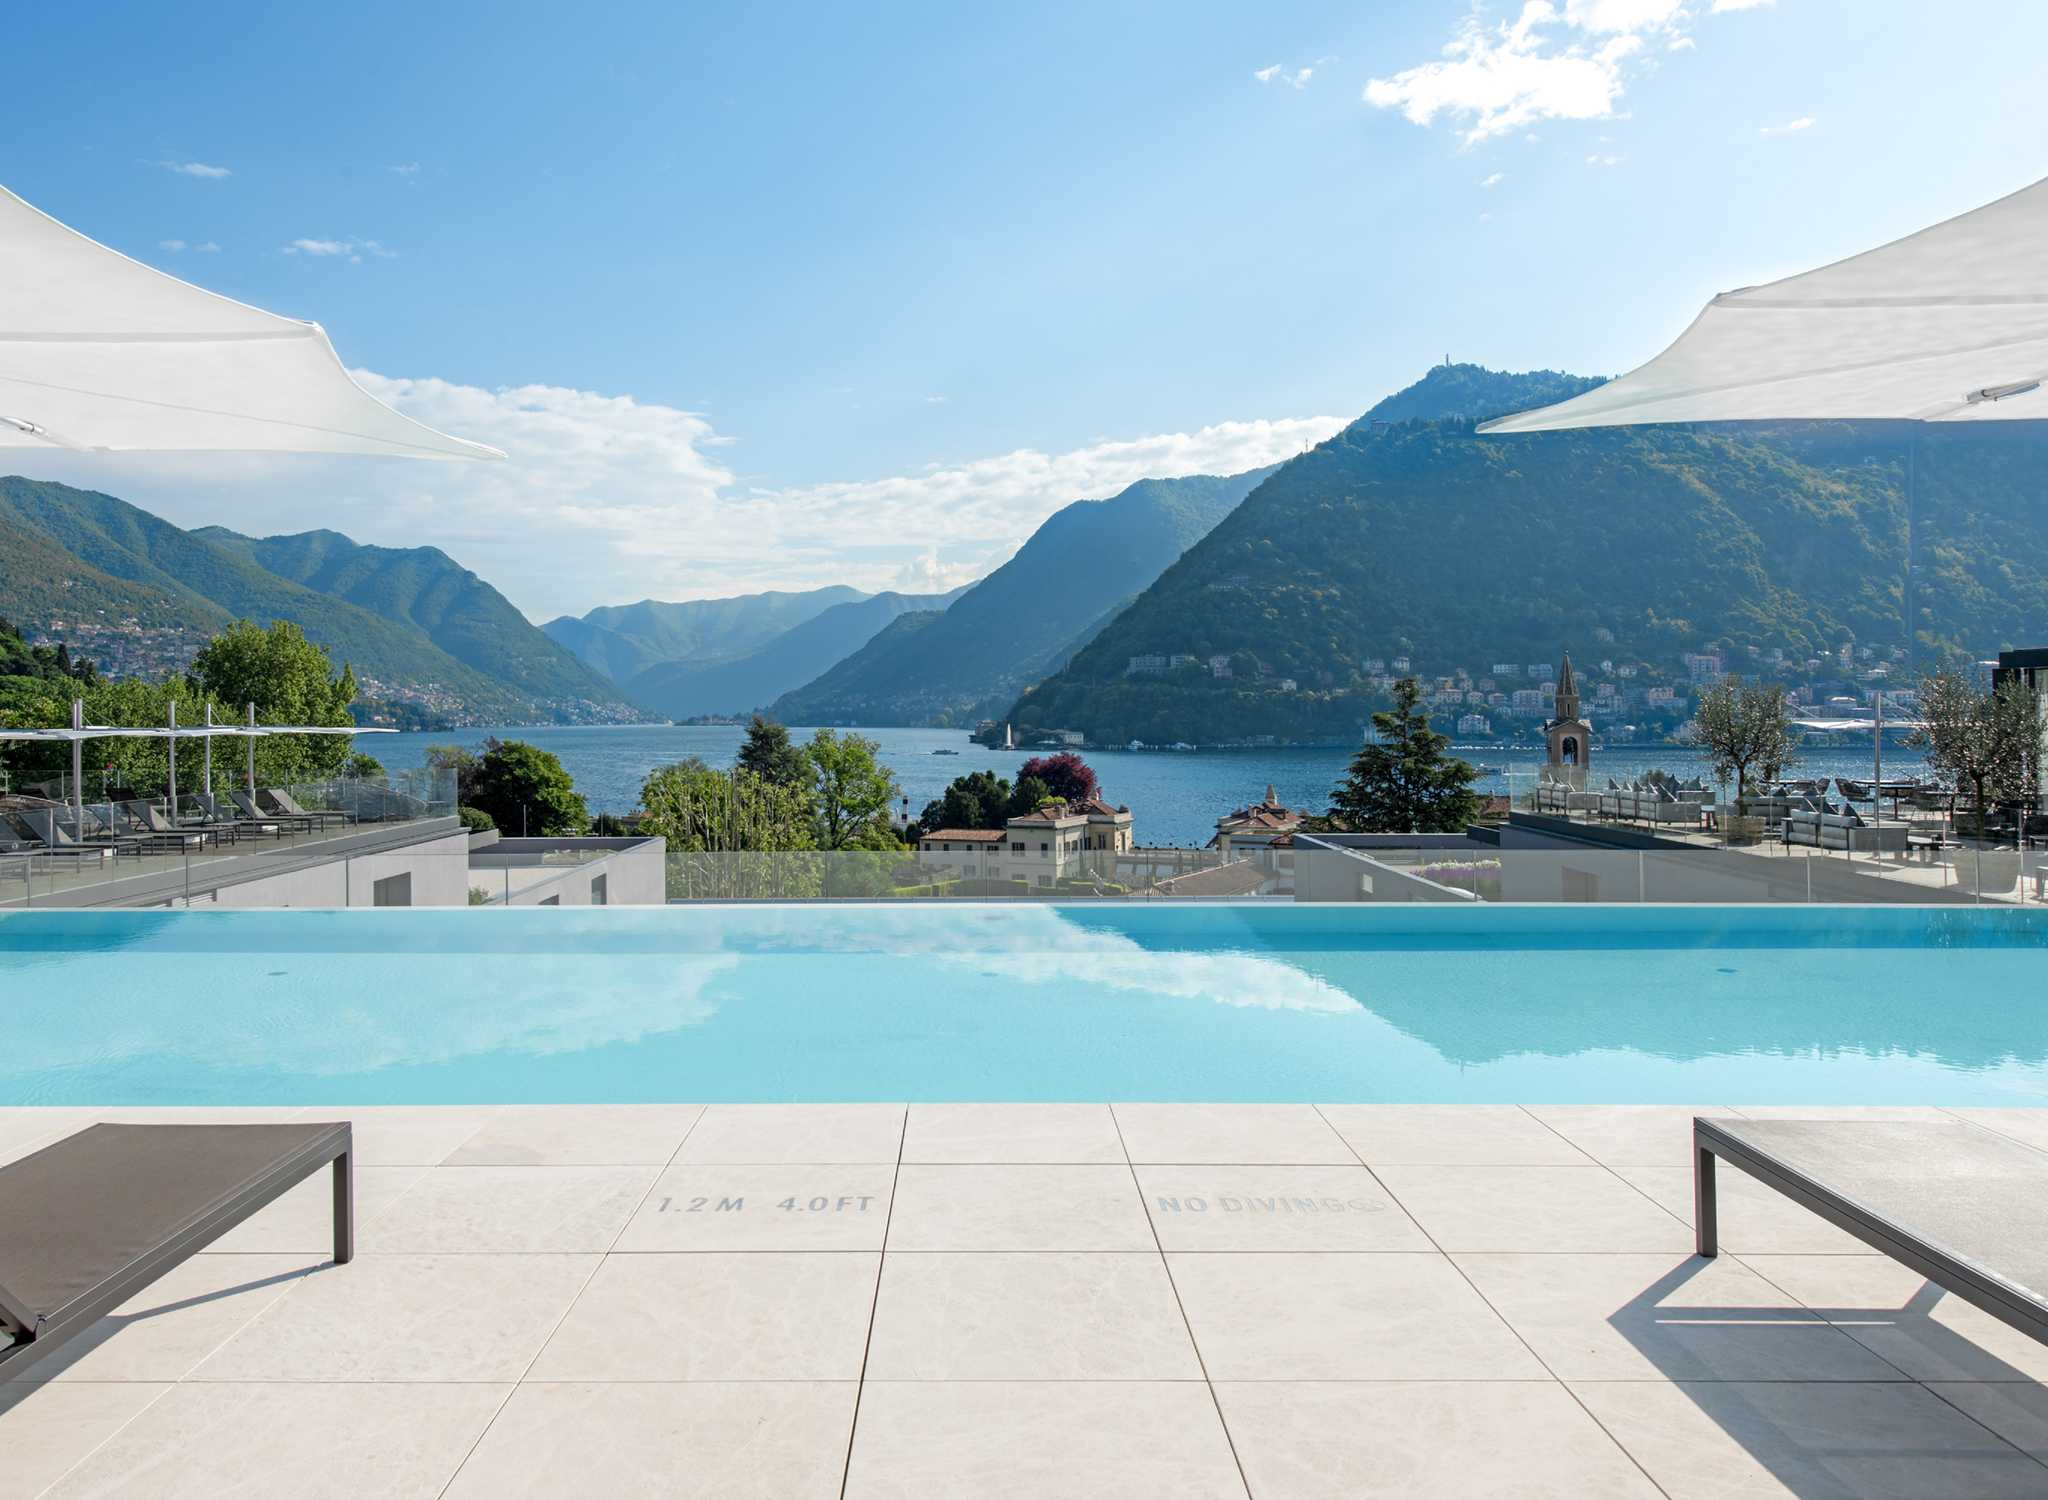 Outdoor Küche Aus Italien : Hilton hotels & resorts in italien